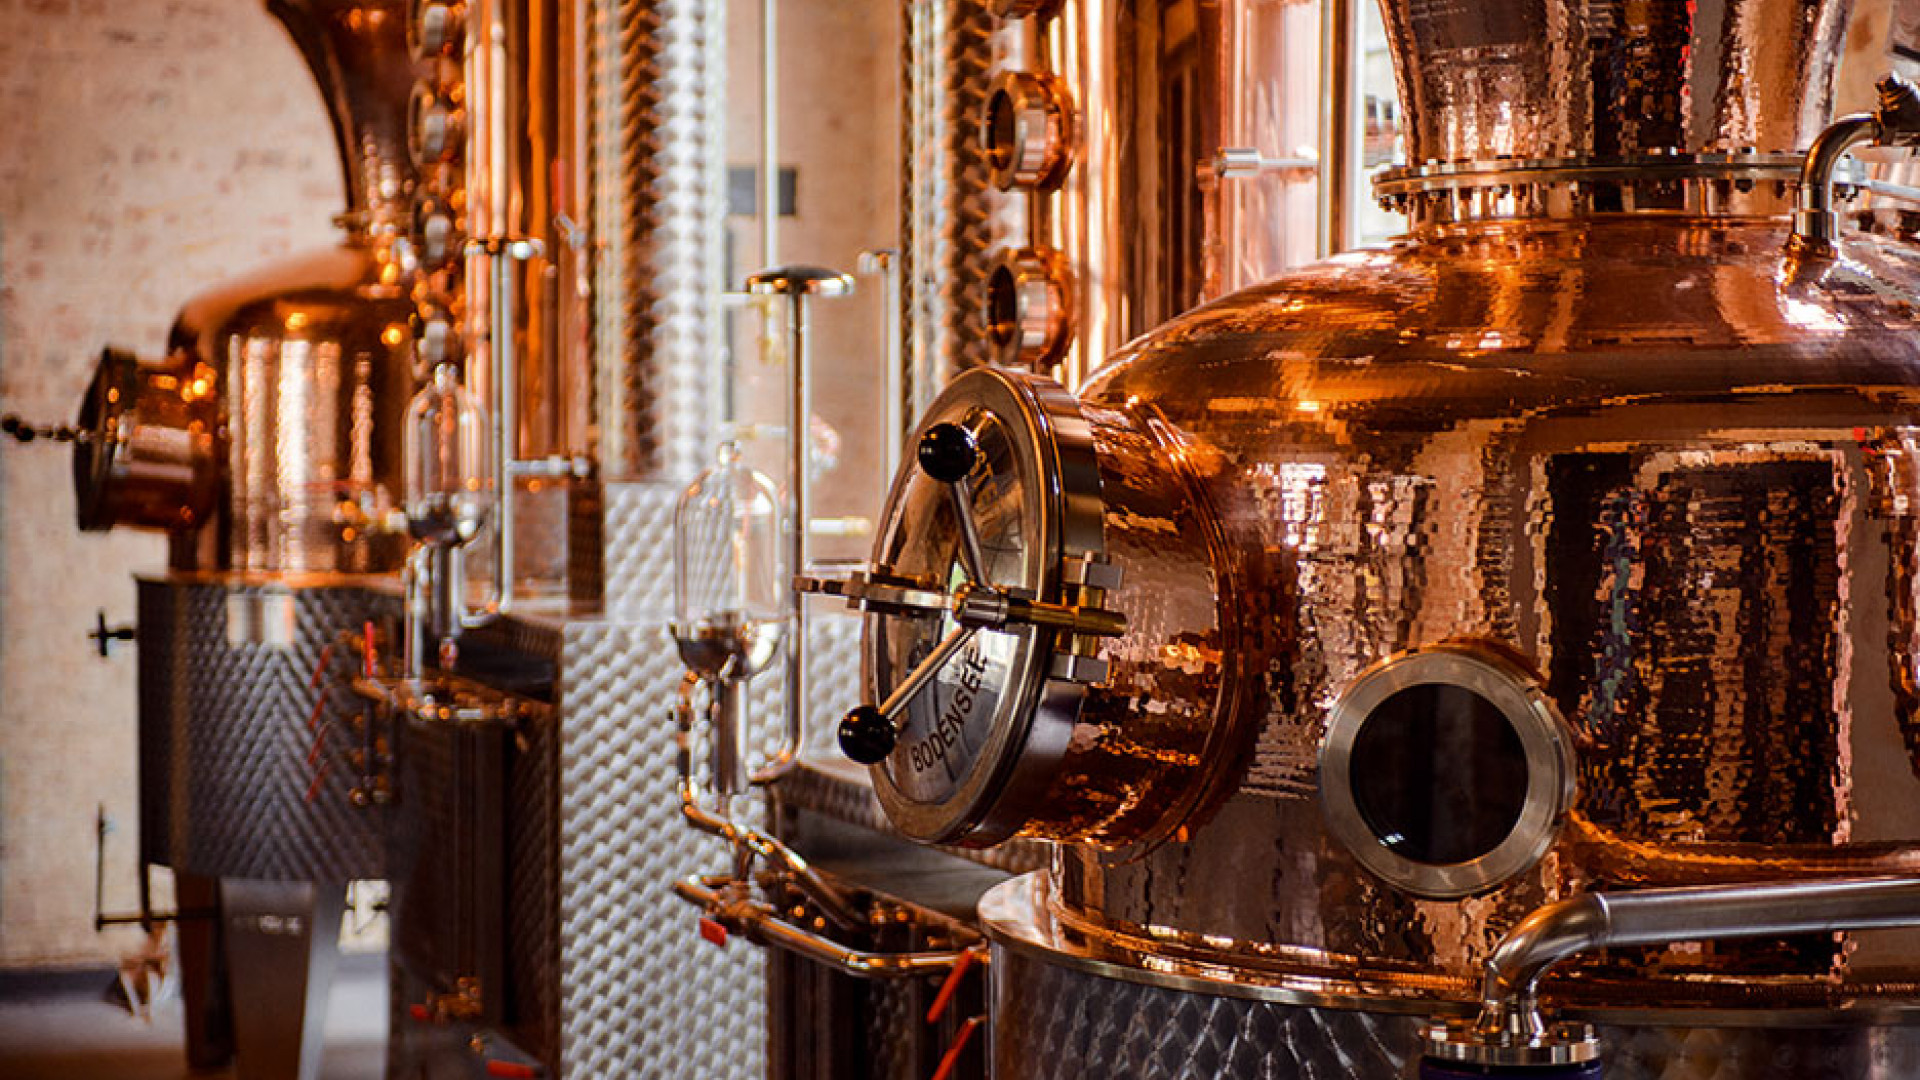 The East London Liquor Company's new whisky | Foodism